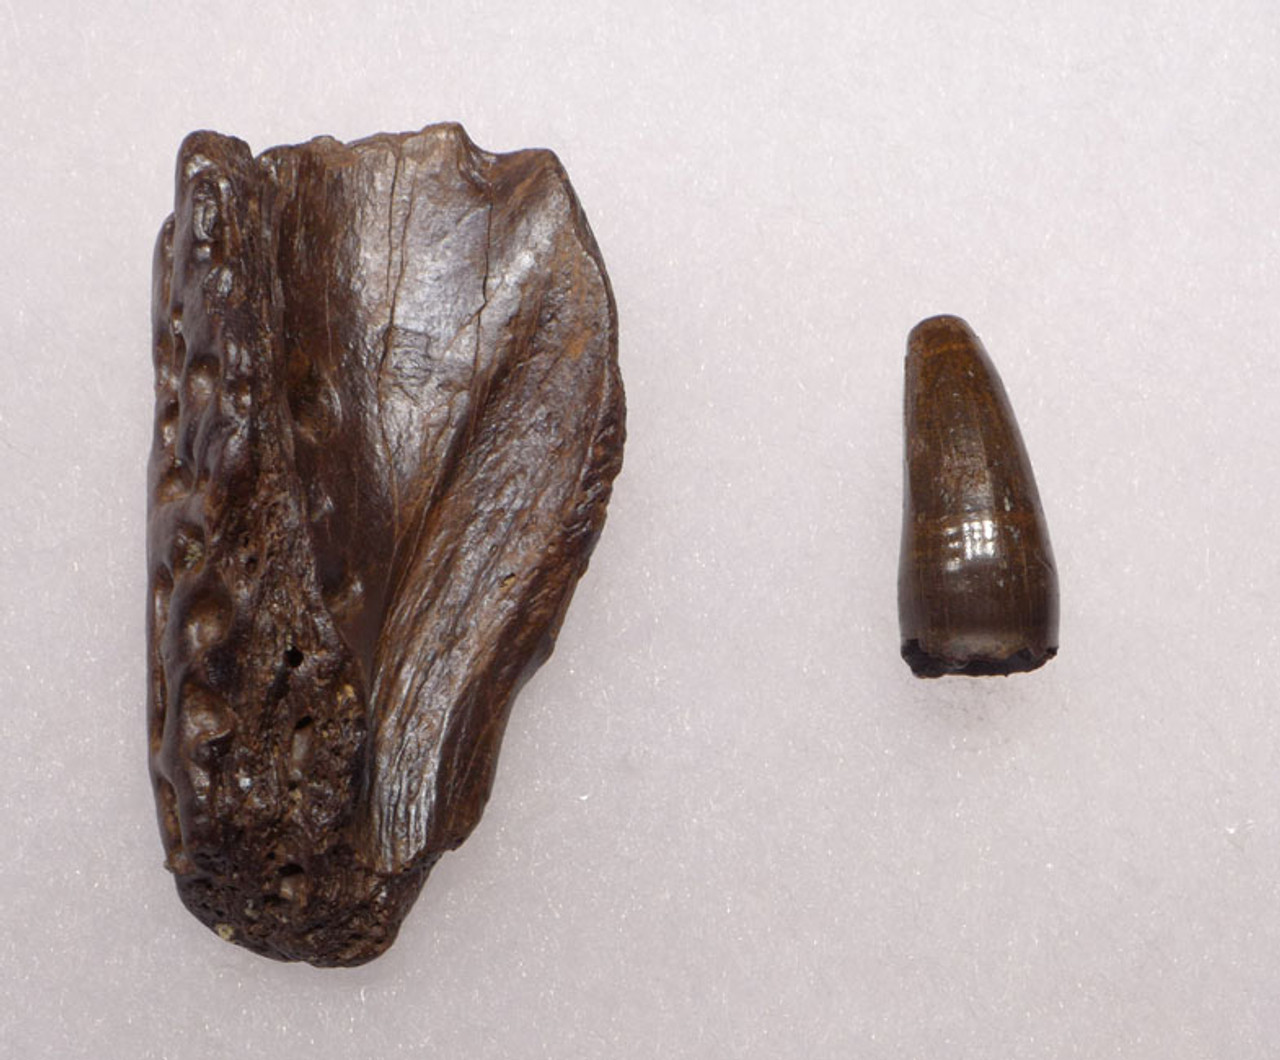 CROC037 - DINOSAUR-ERA LEIDYOSUCHUS CROCODILE TOOTH WITH PORTION OF MANDIBLE JAW